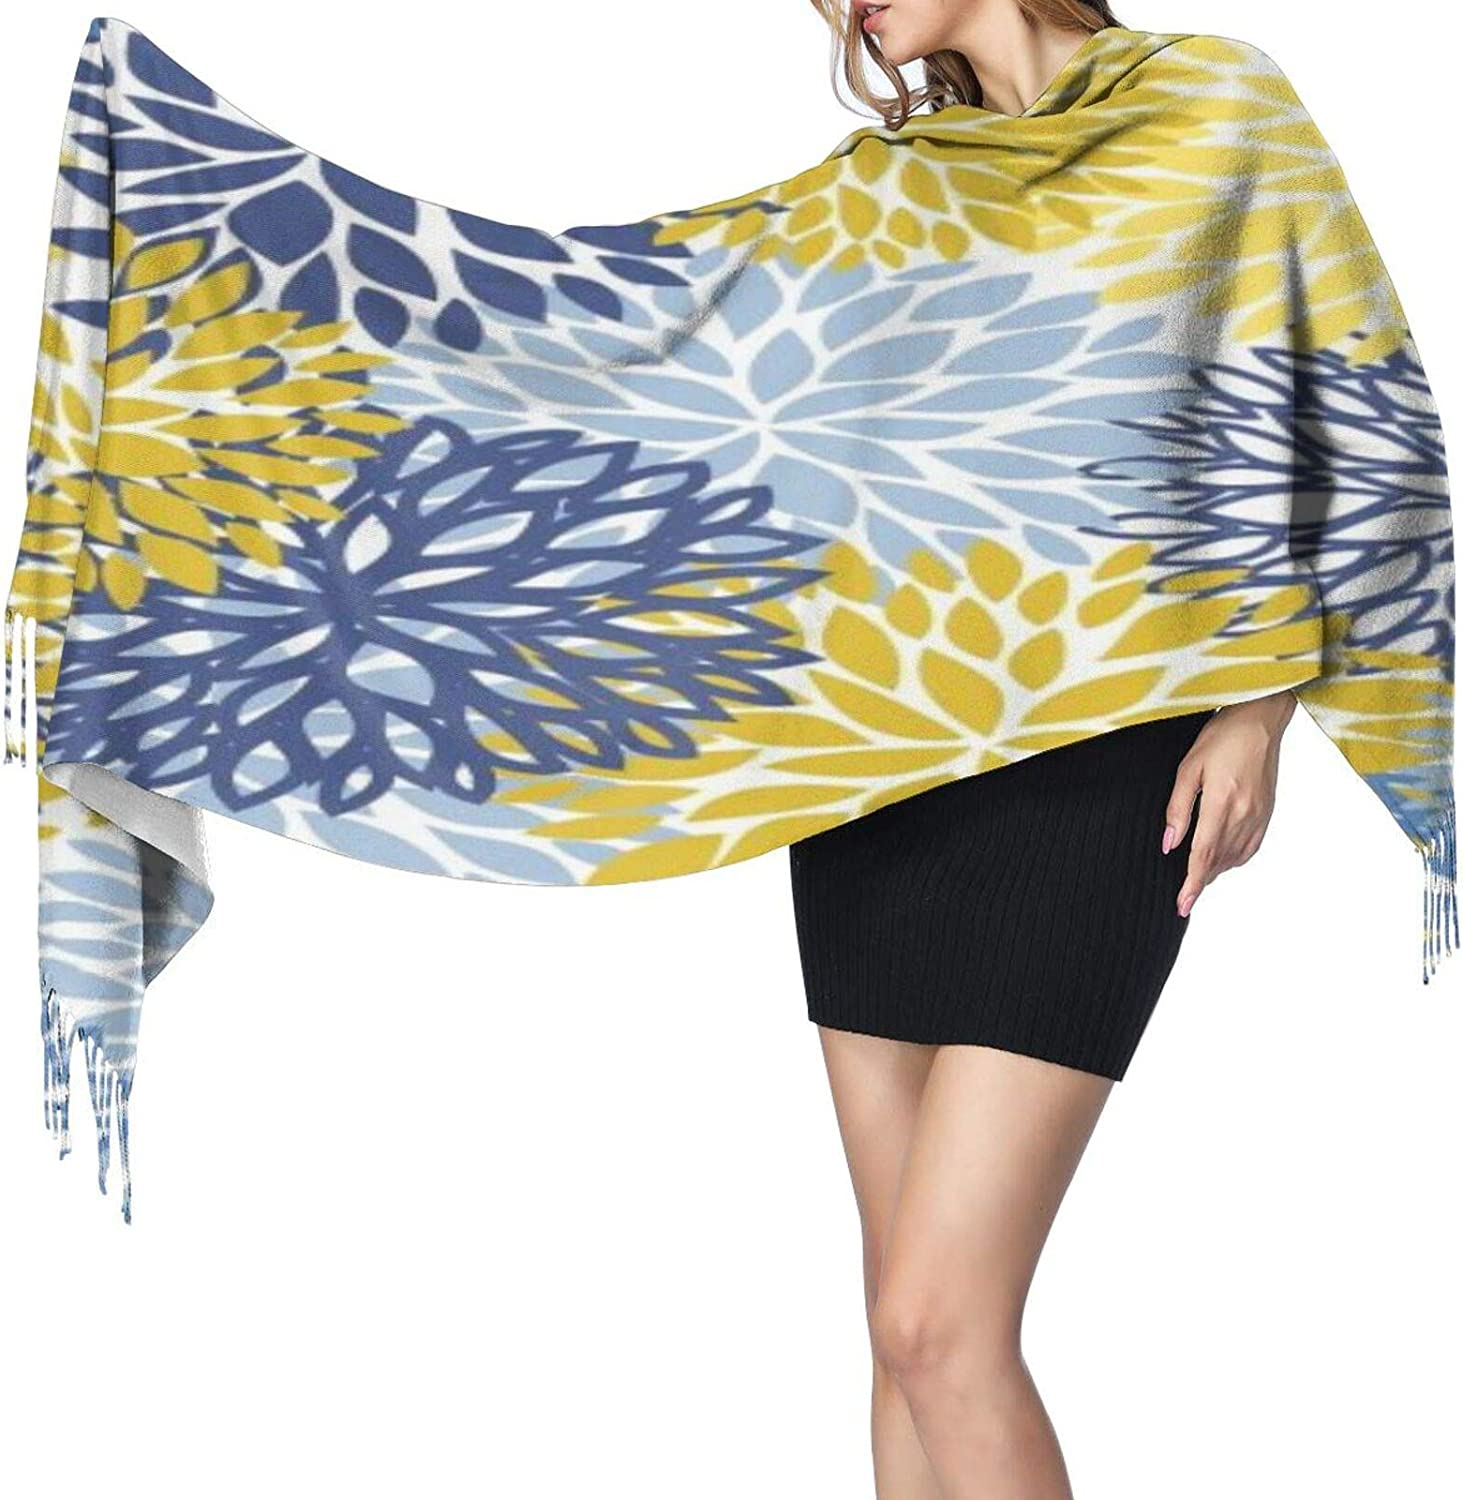 Cashmere fringed scarf Blue Yellow and Navy Chrysanthemum winter extra large scarf